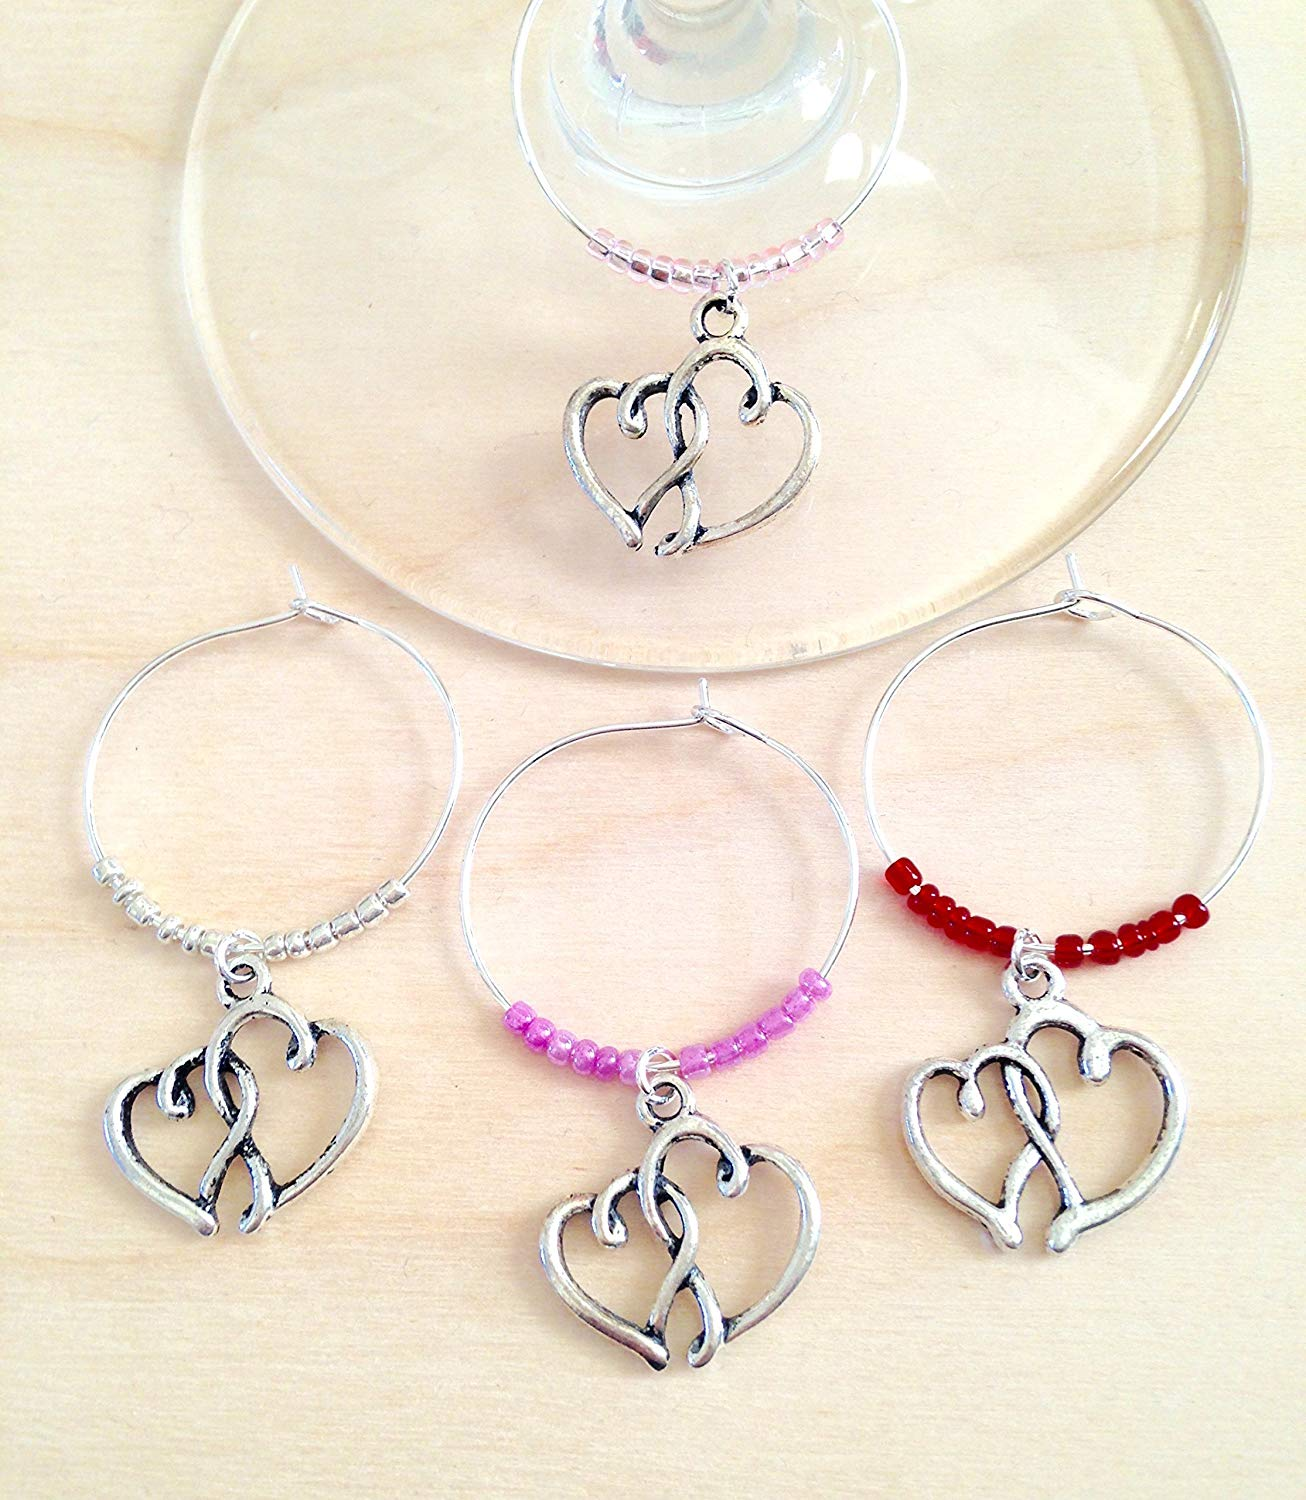 wine charms for engagement party favors bridal shower favors